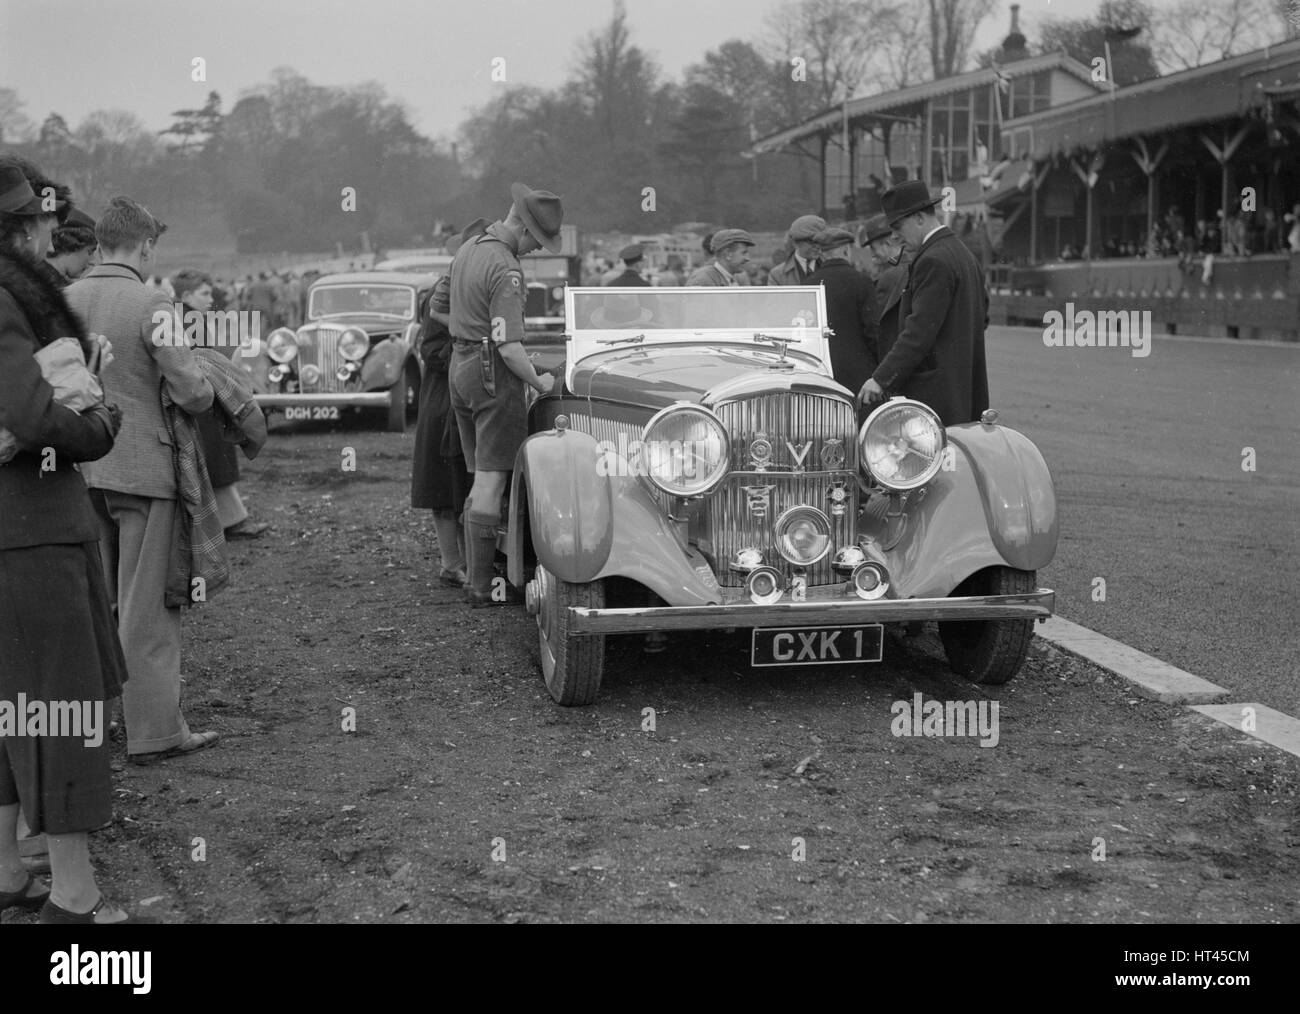 Bentley open 4-seater tourer owned by Sir Malcolm Campbell, Crystal Palace, London, 1939. Artist: Bill Brunell. - Stock Image